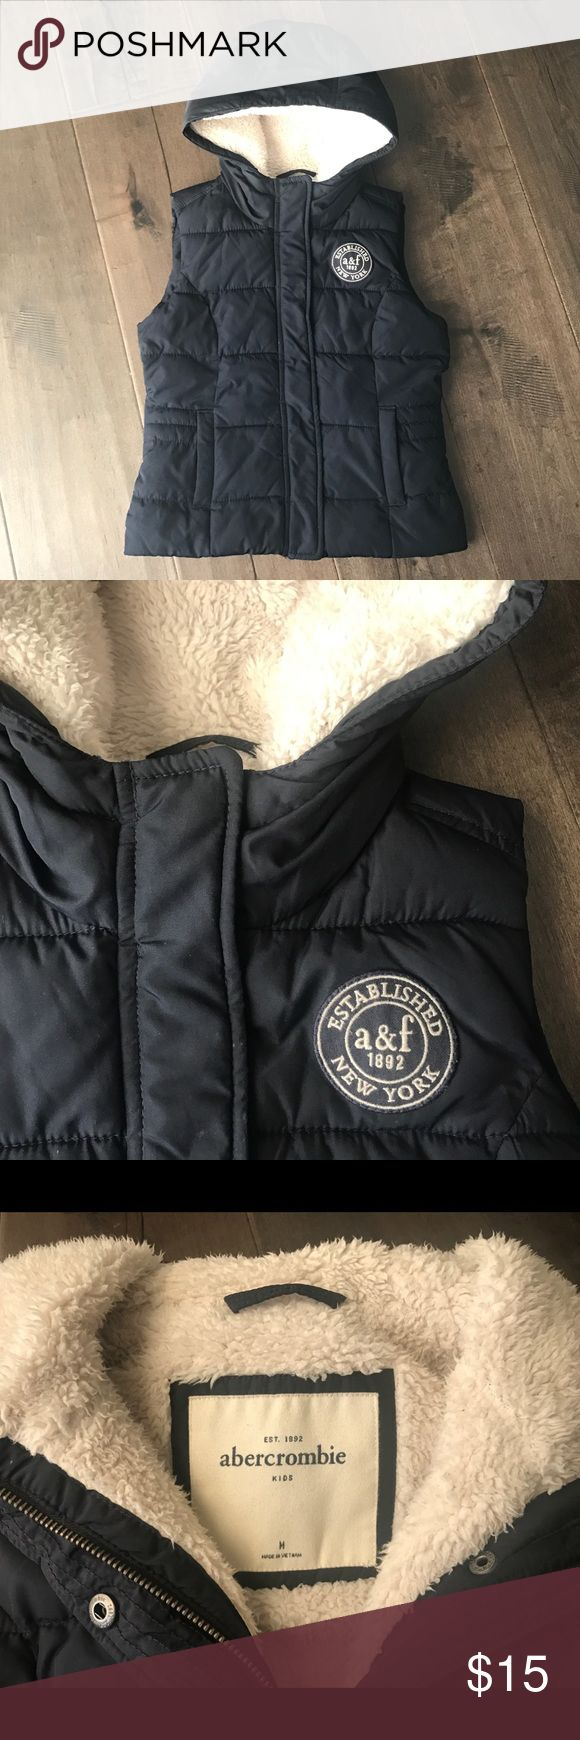 Abercrombie Girls' vest Abercrombie Girls' vest in dark navy In excellent used condition Zippered front with snap fasteners  Two front pockets abercrombie kids Jackets & Coats Vests